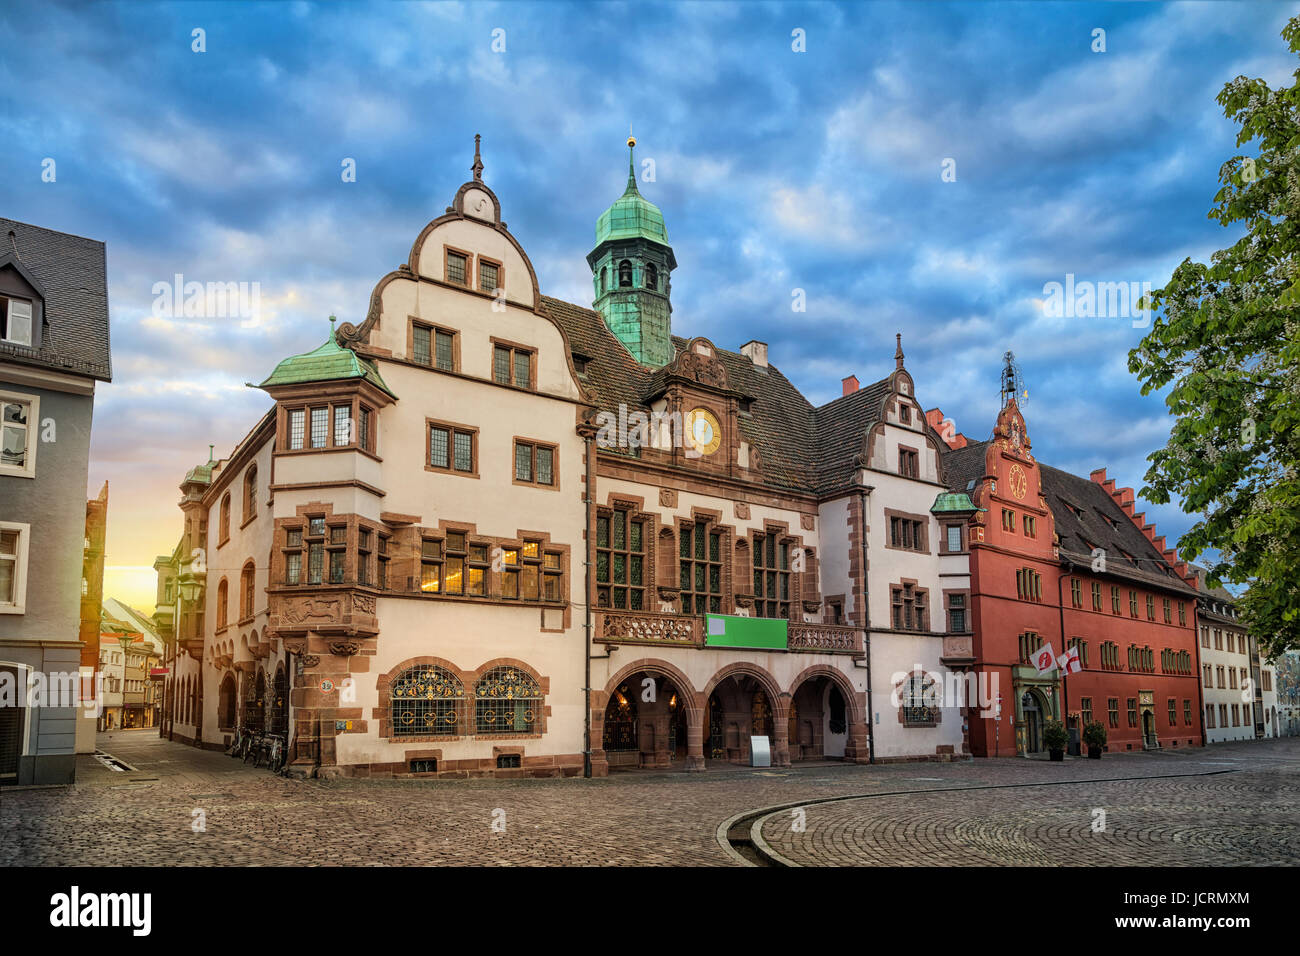 Old Town Hall (Altes Rathaus) on sunrise in Freiburg im Breisgau, Baden-Wurttemberg, Germany - Stock Image